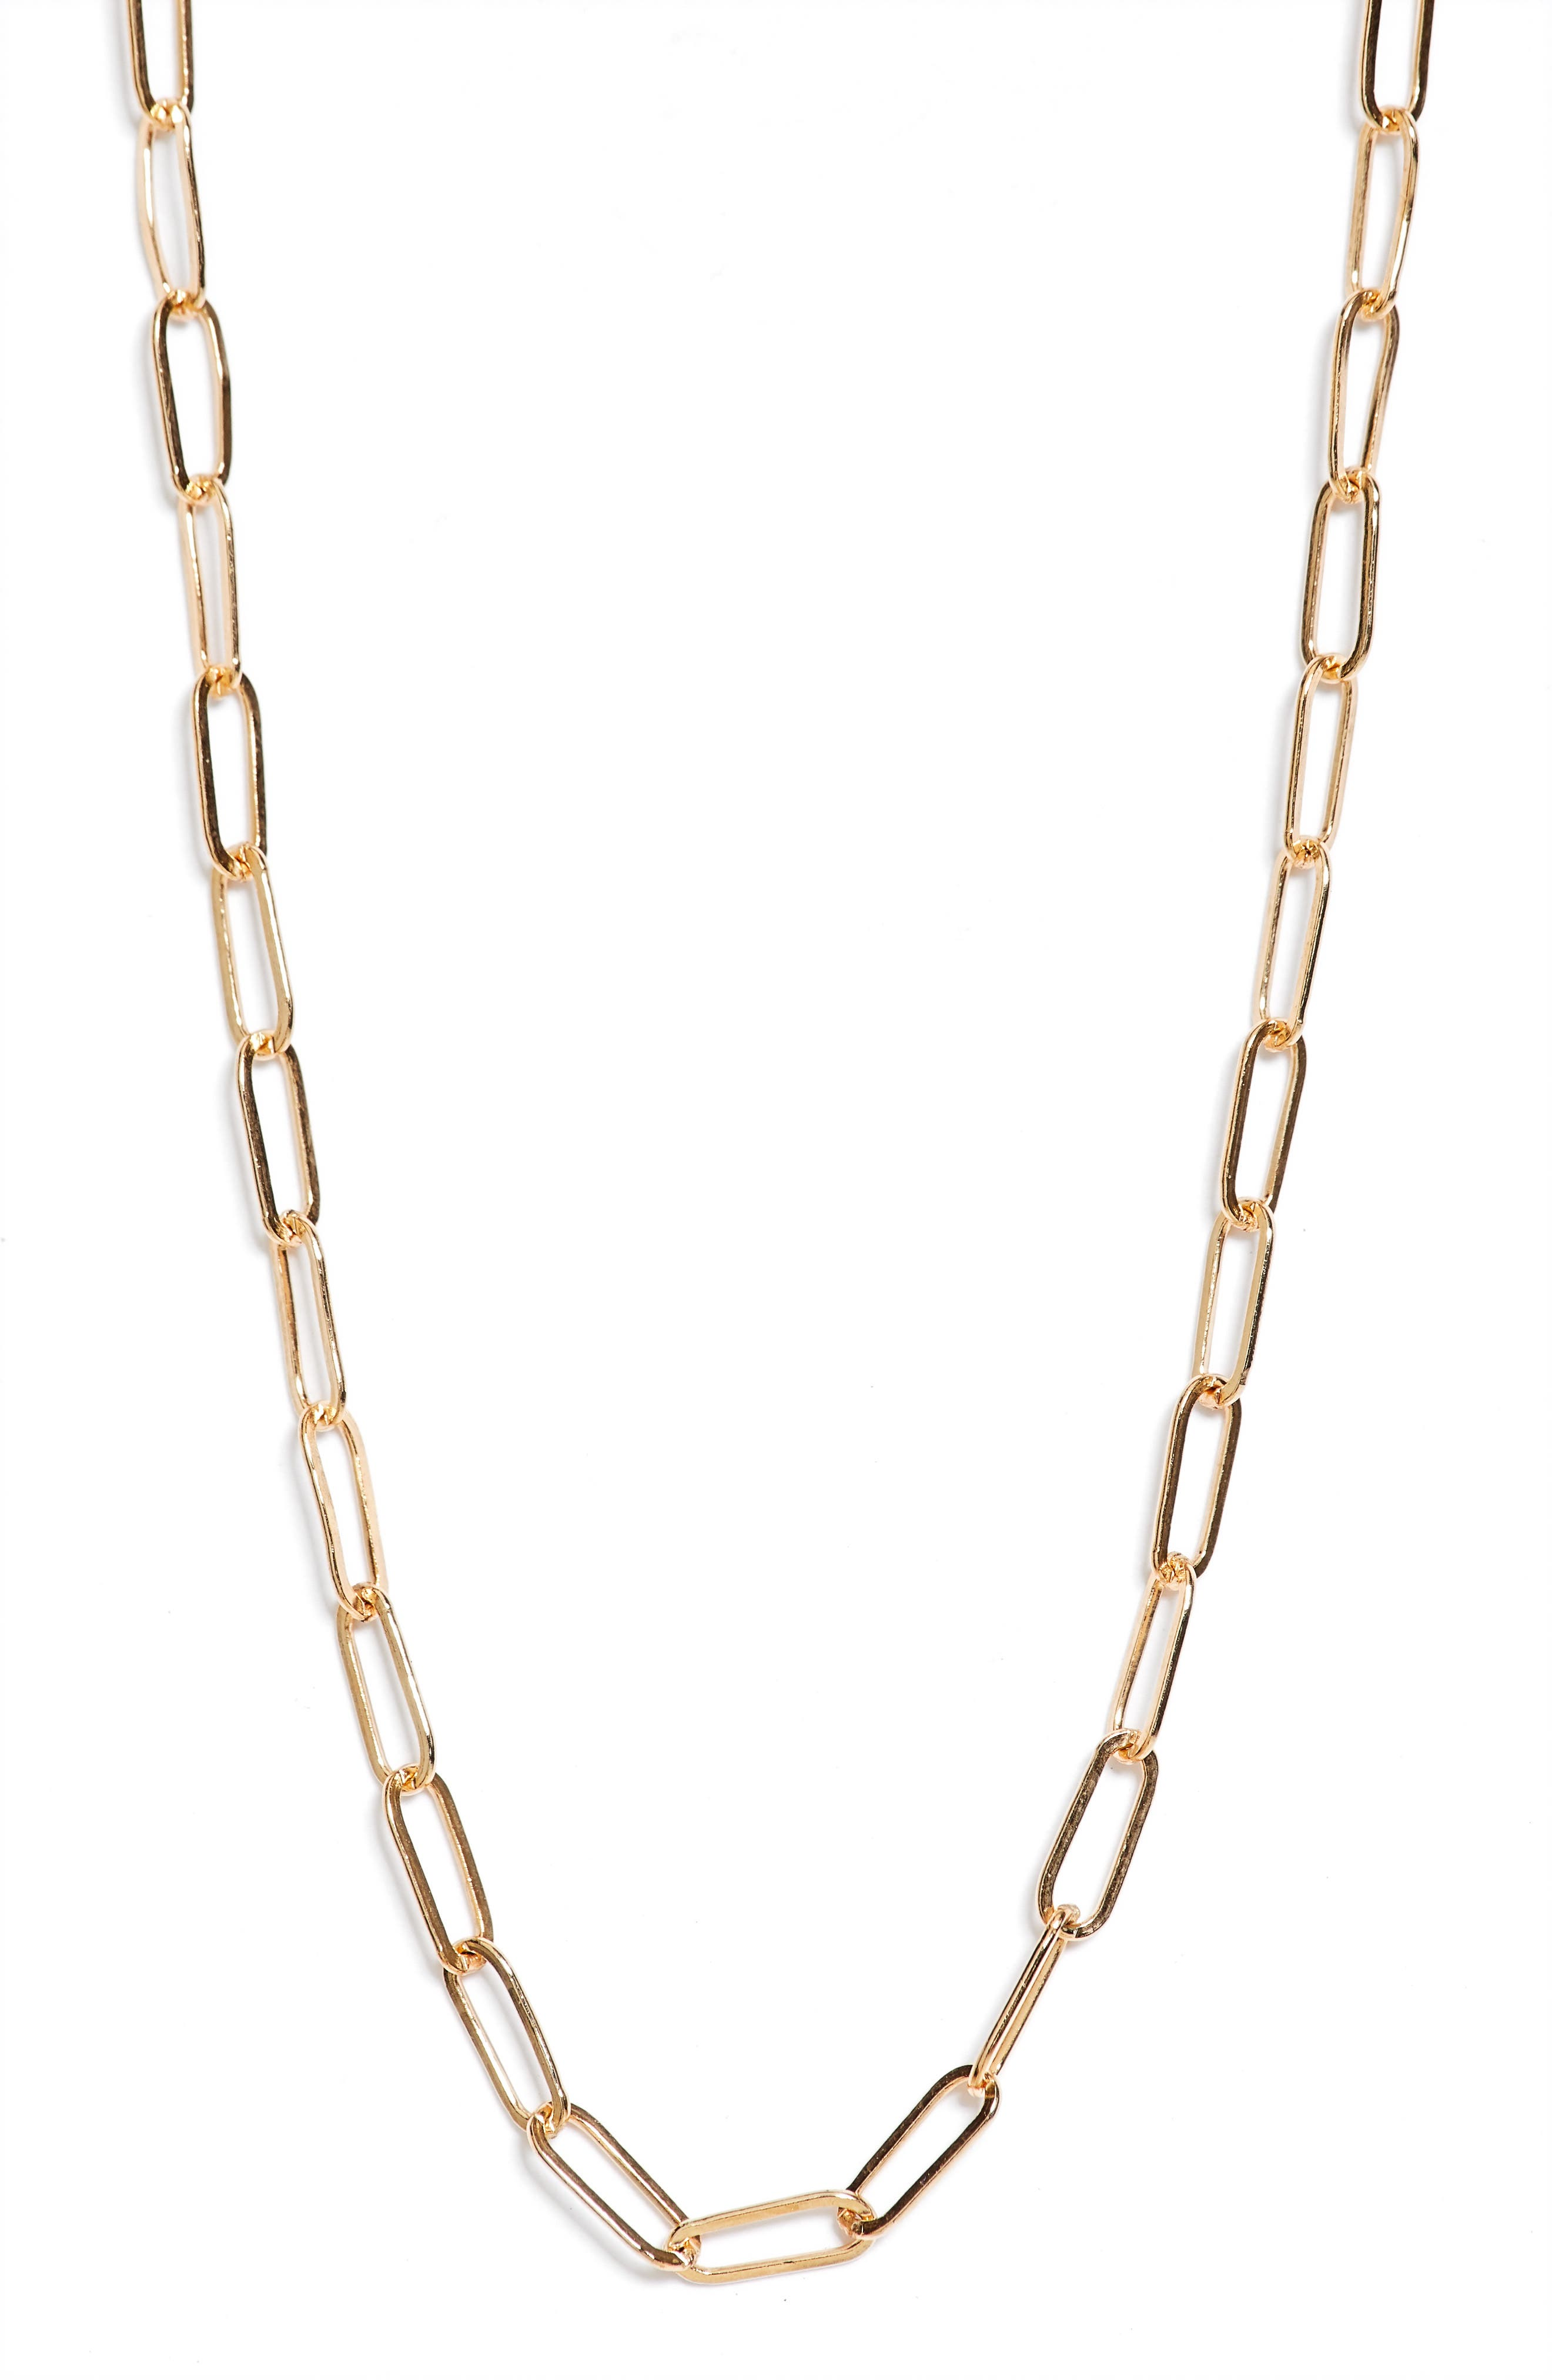 Handmade in the USA, this open-link necklace makes an understated accessory. Style Name: Set & Stones Porter Chain Link Necklace. Style Number: 6093915. Available in stores.